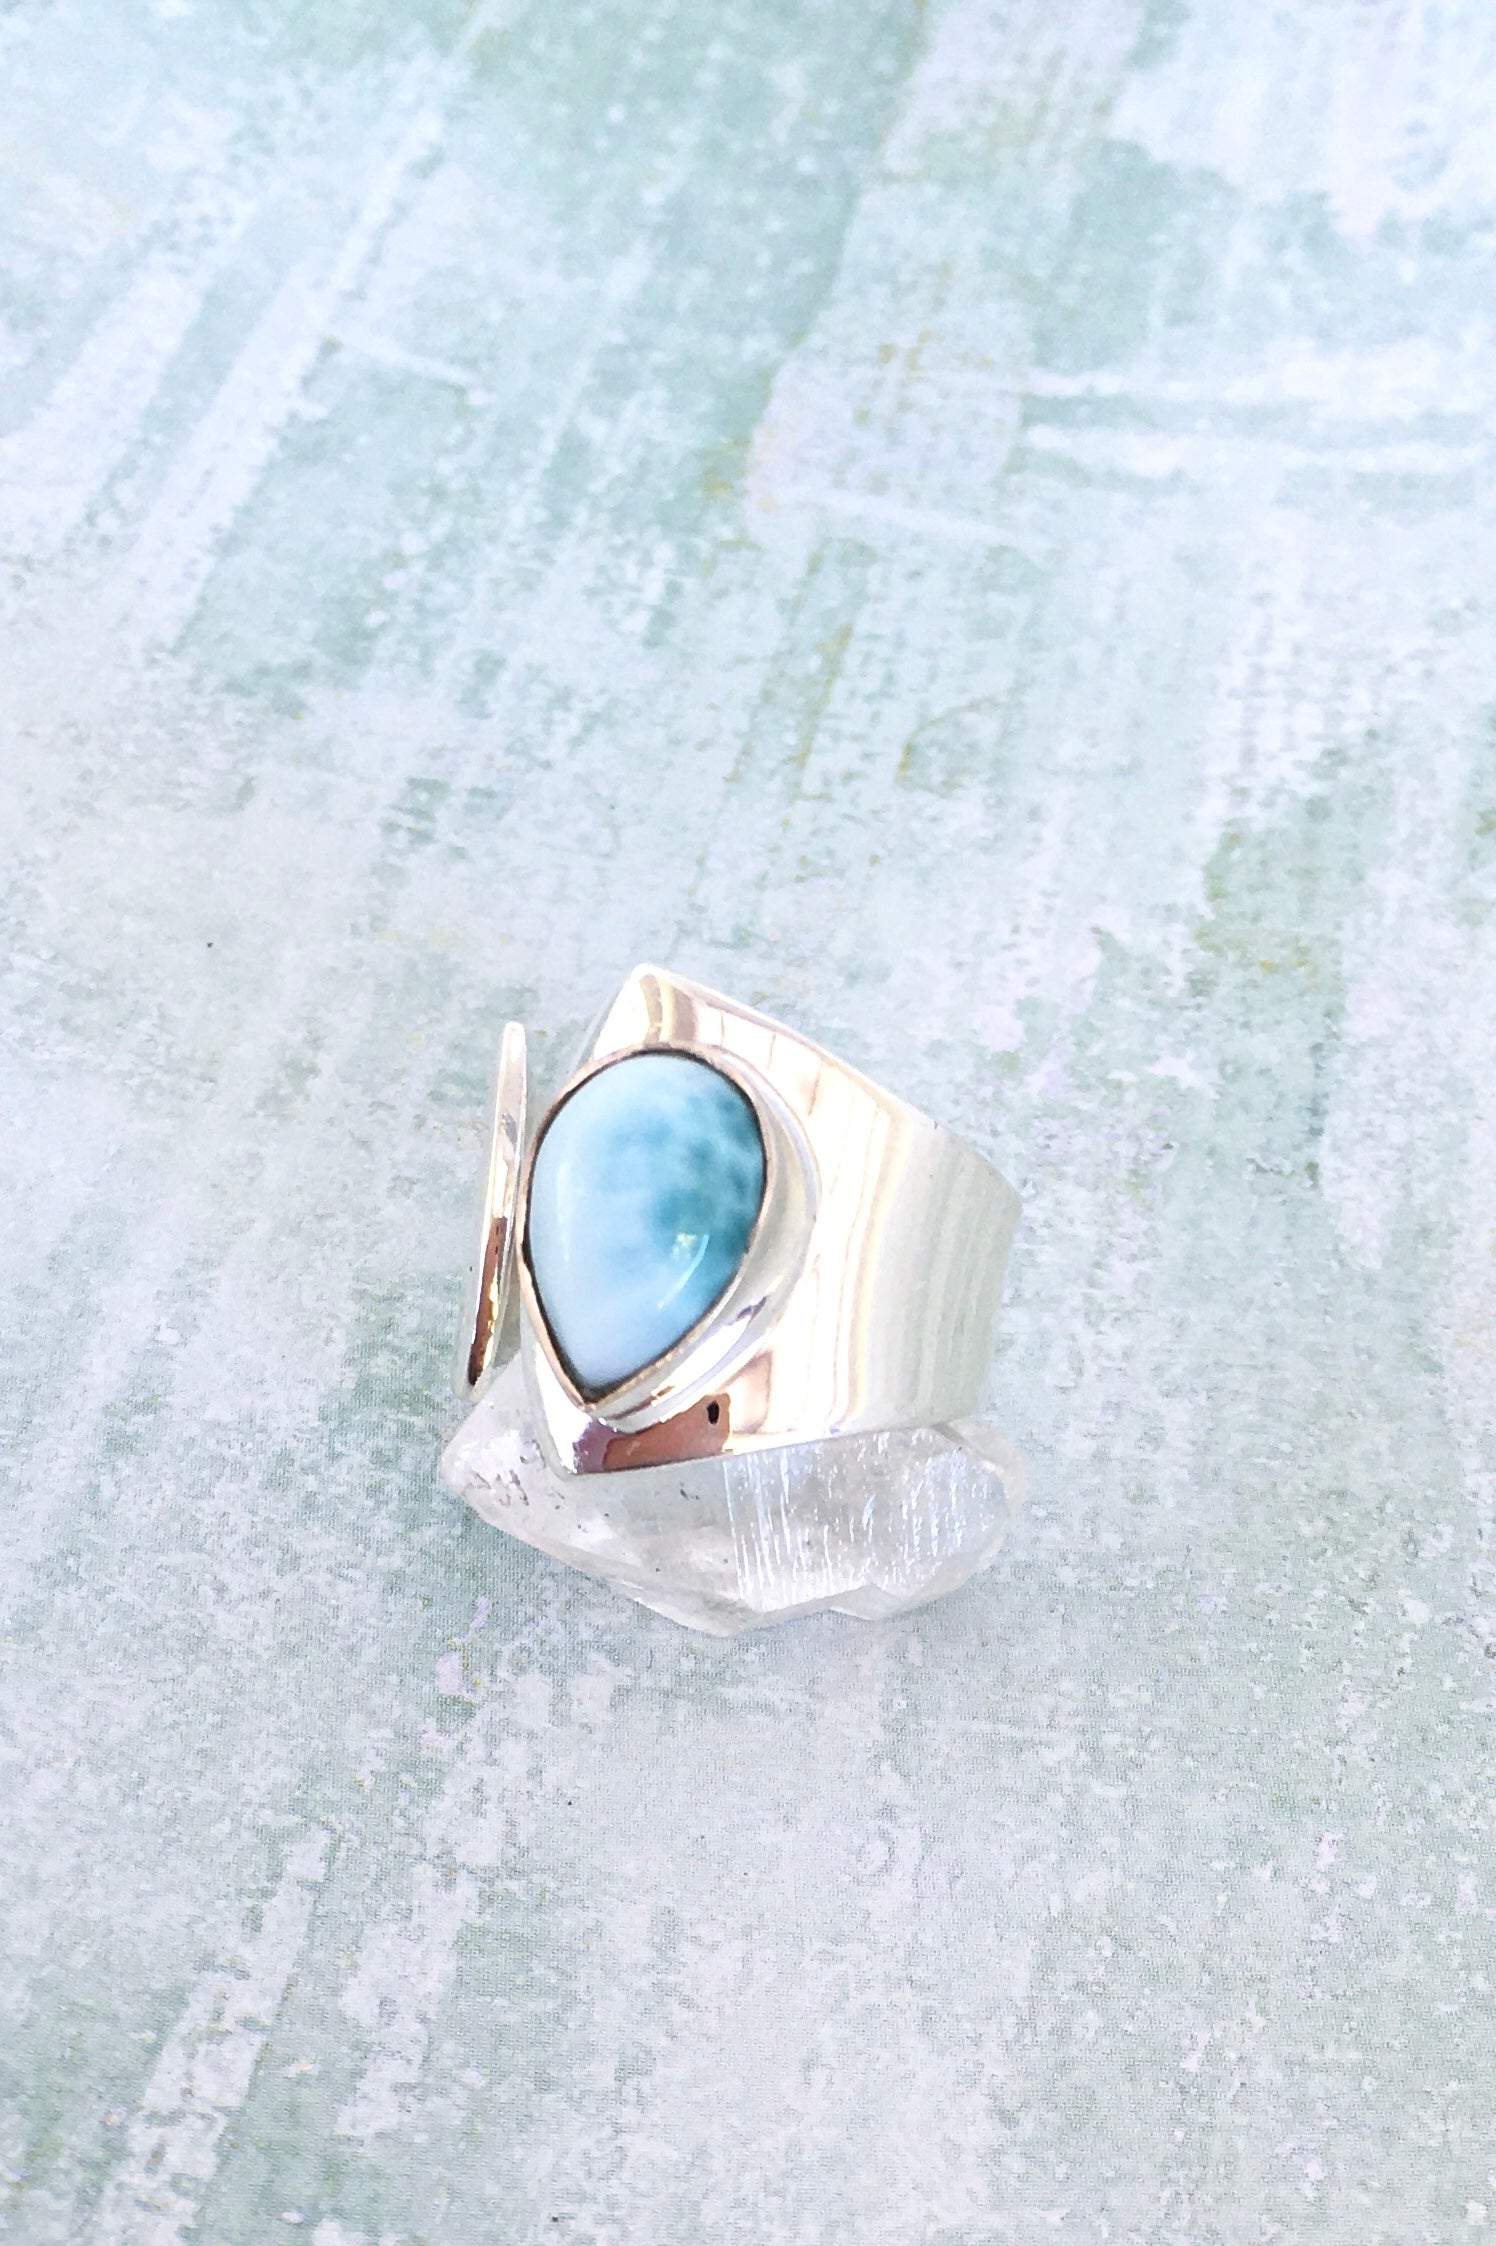 Oracle Larimar Ring. Oval cut blue topaz Larimar stone ring, Sterling silver setting and ring band.